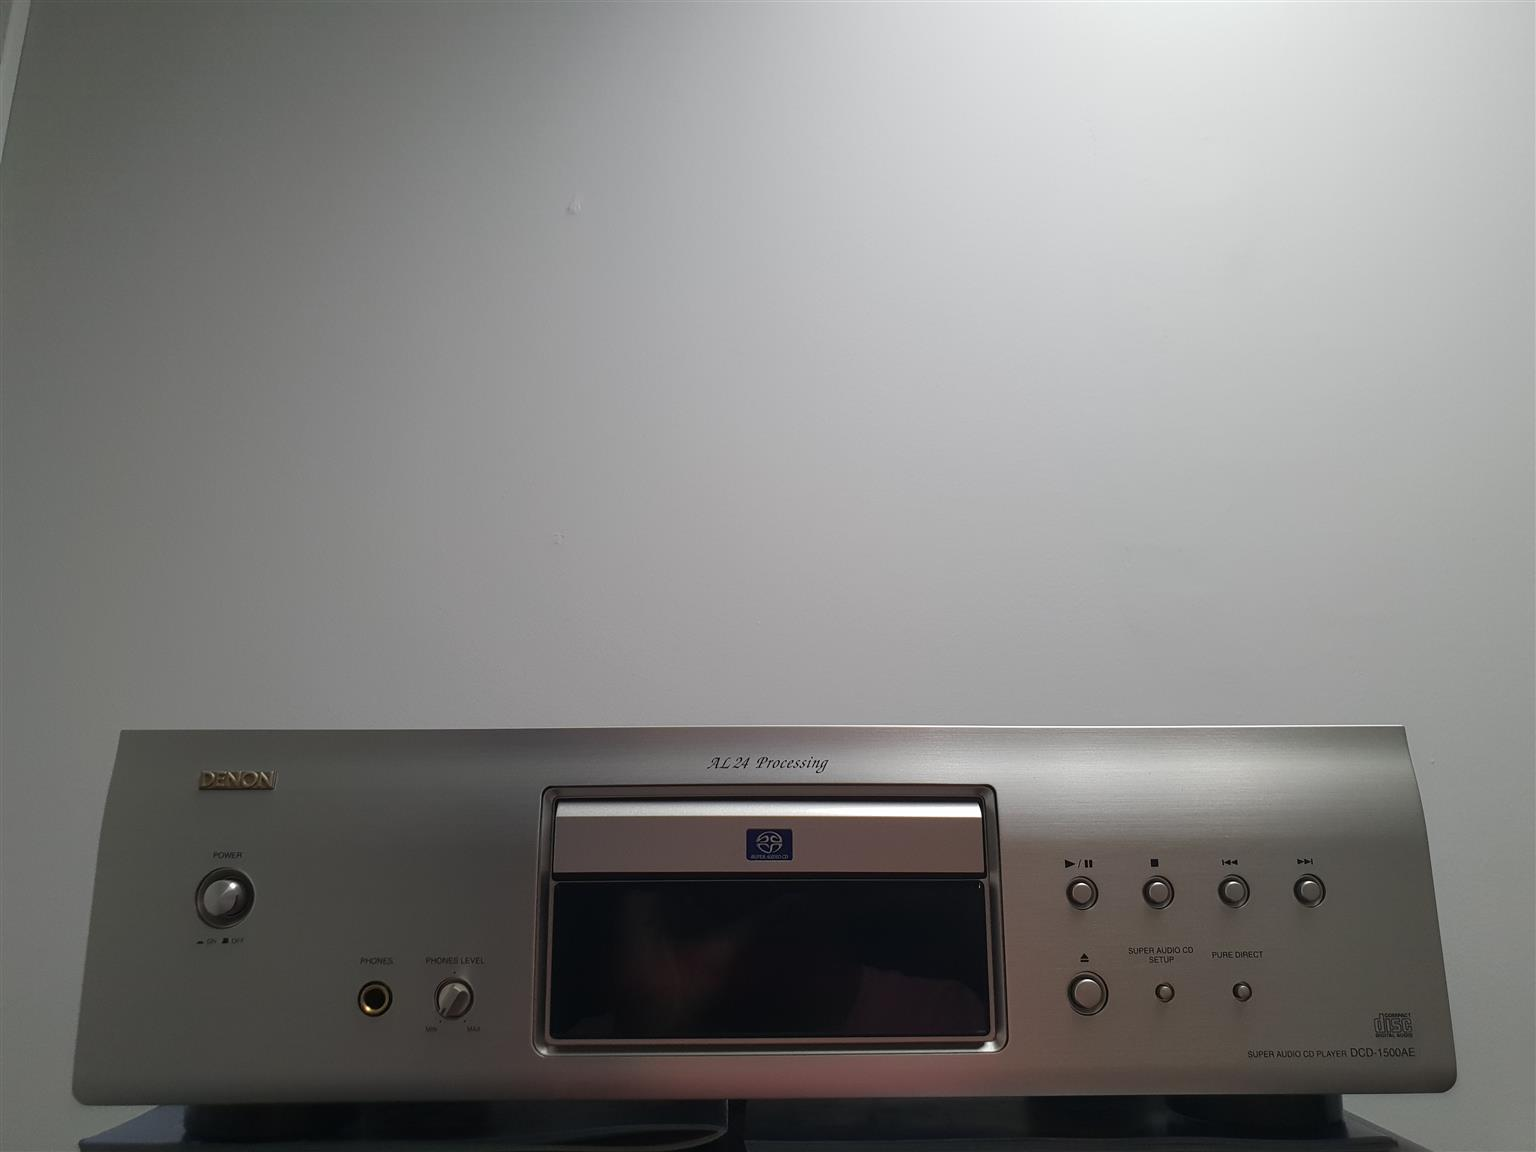 Denon CD player